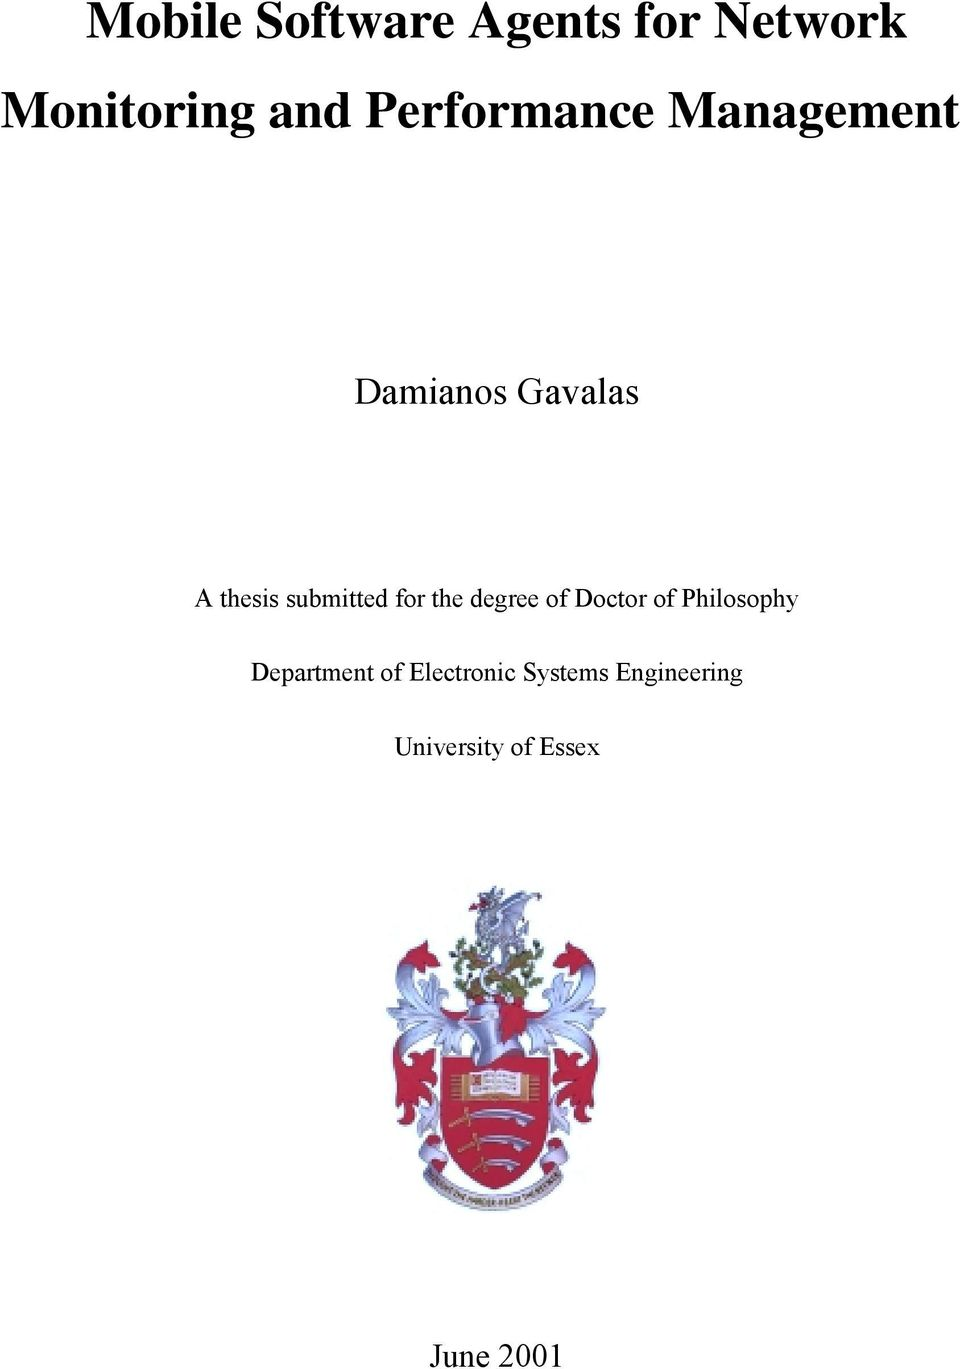 submitted for the degree of Doctor of Philosophy